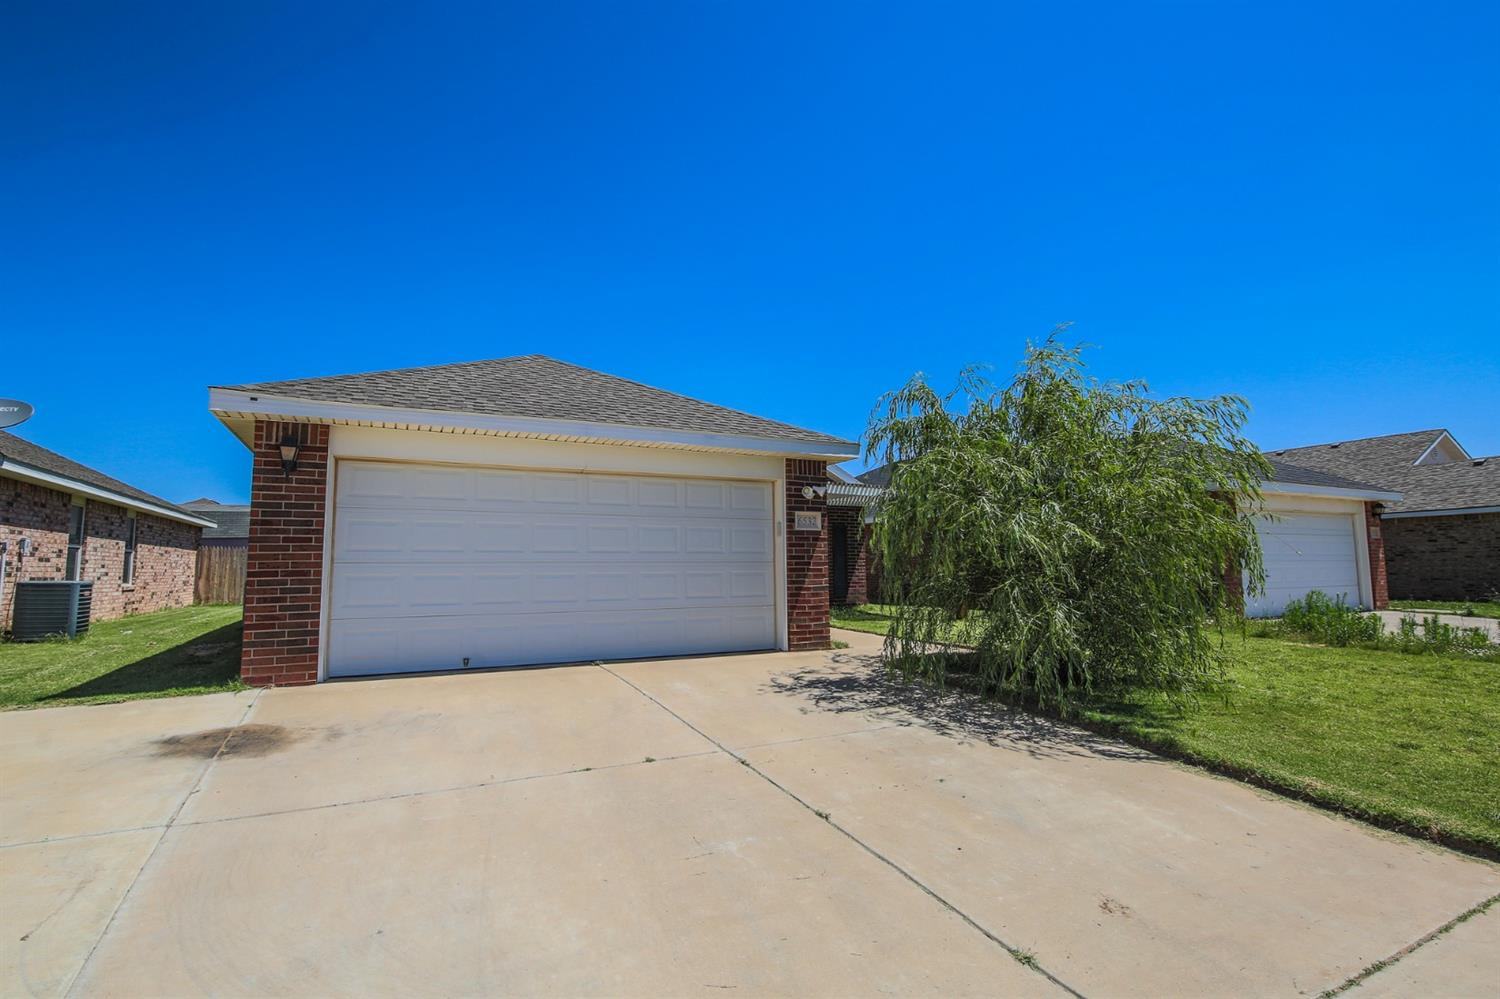 6532 94th Street, Lubbock in Lubbock County, TX 79424 Home for Sale